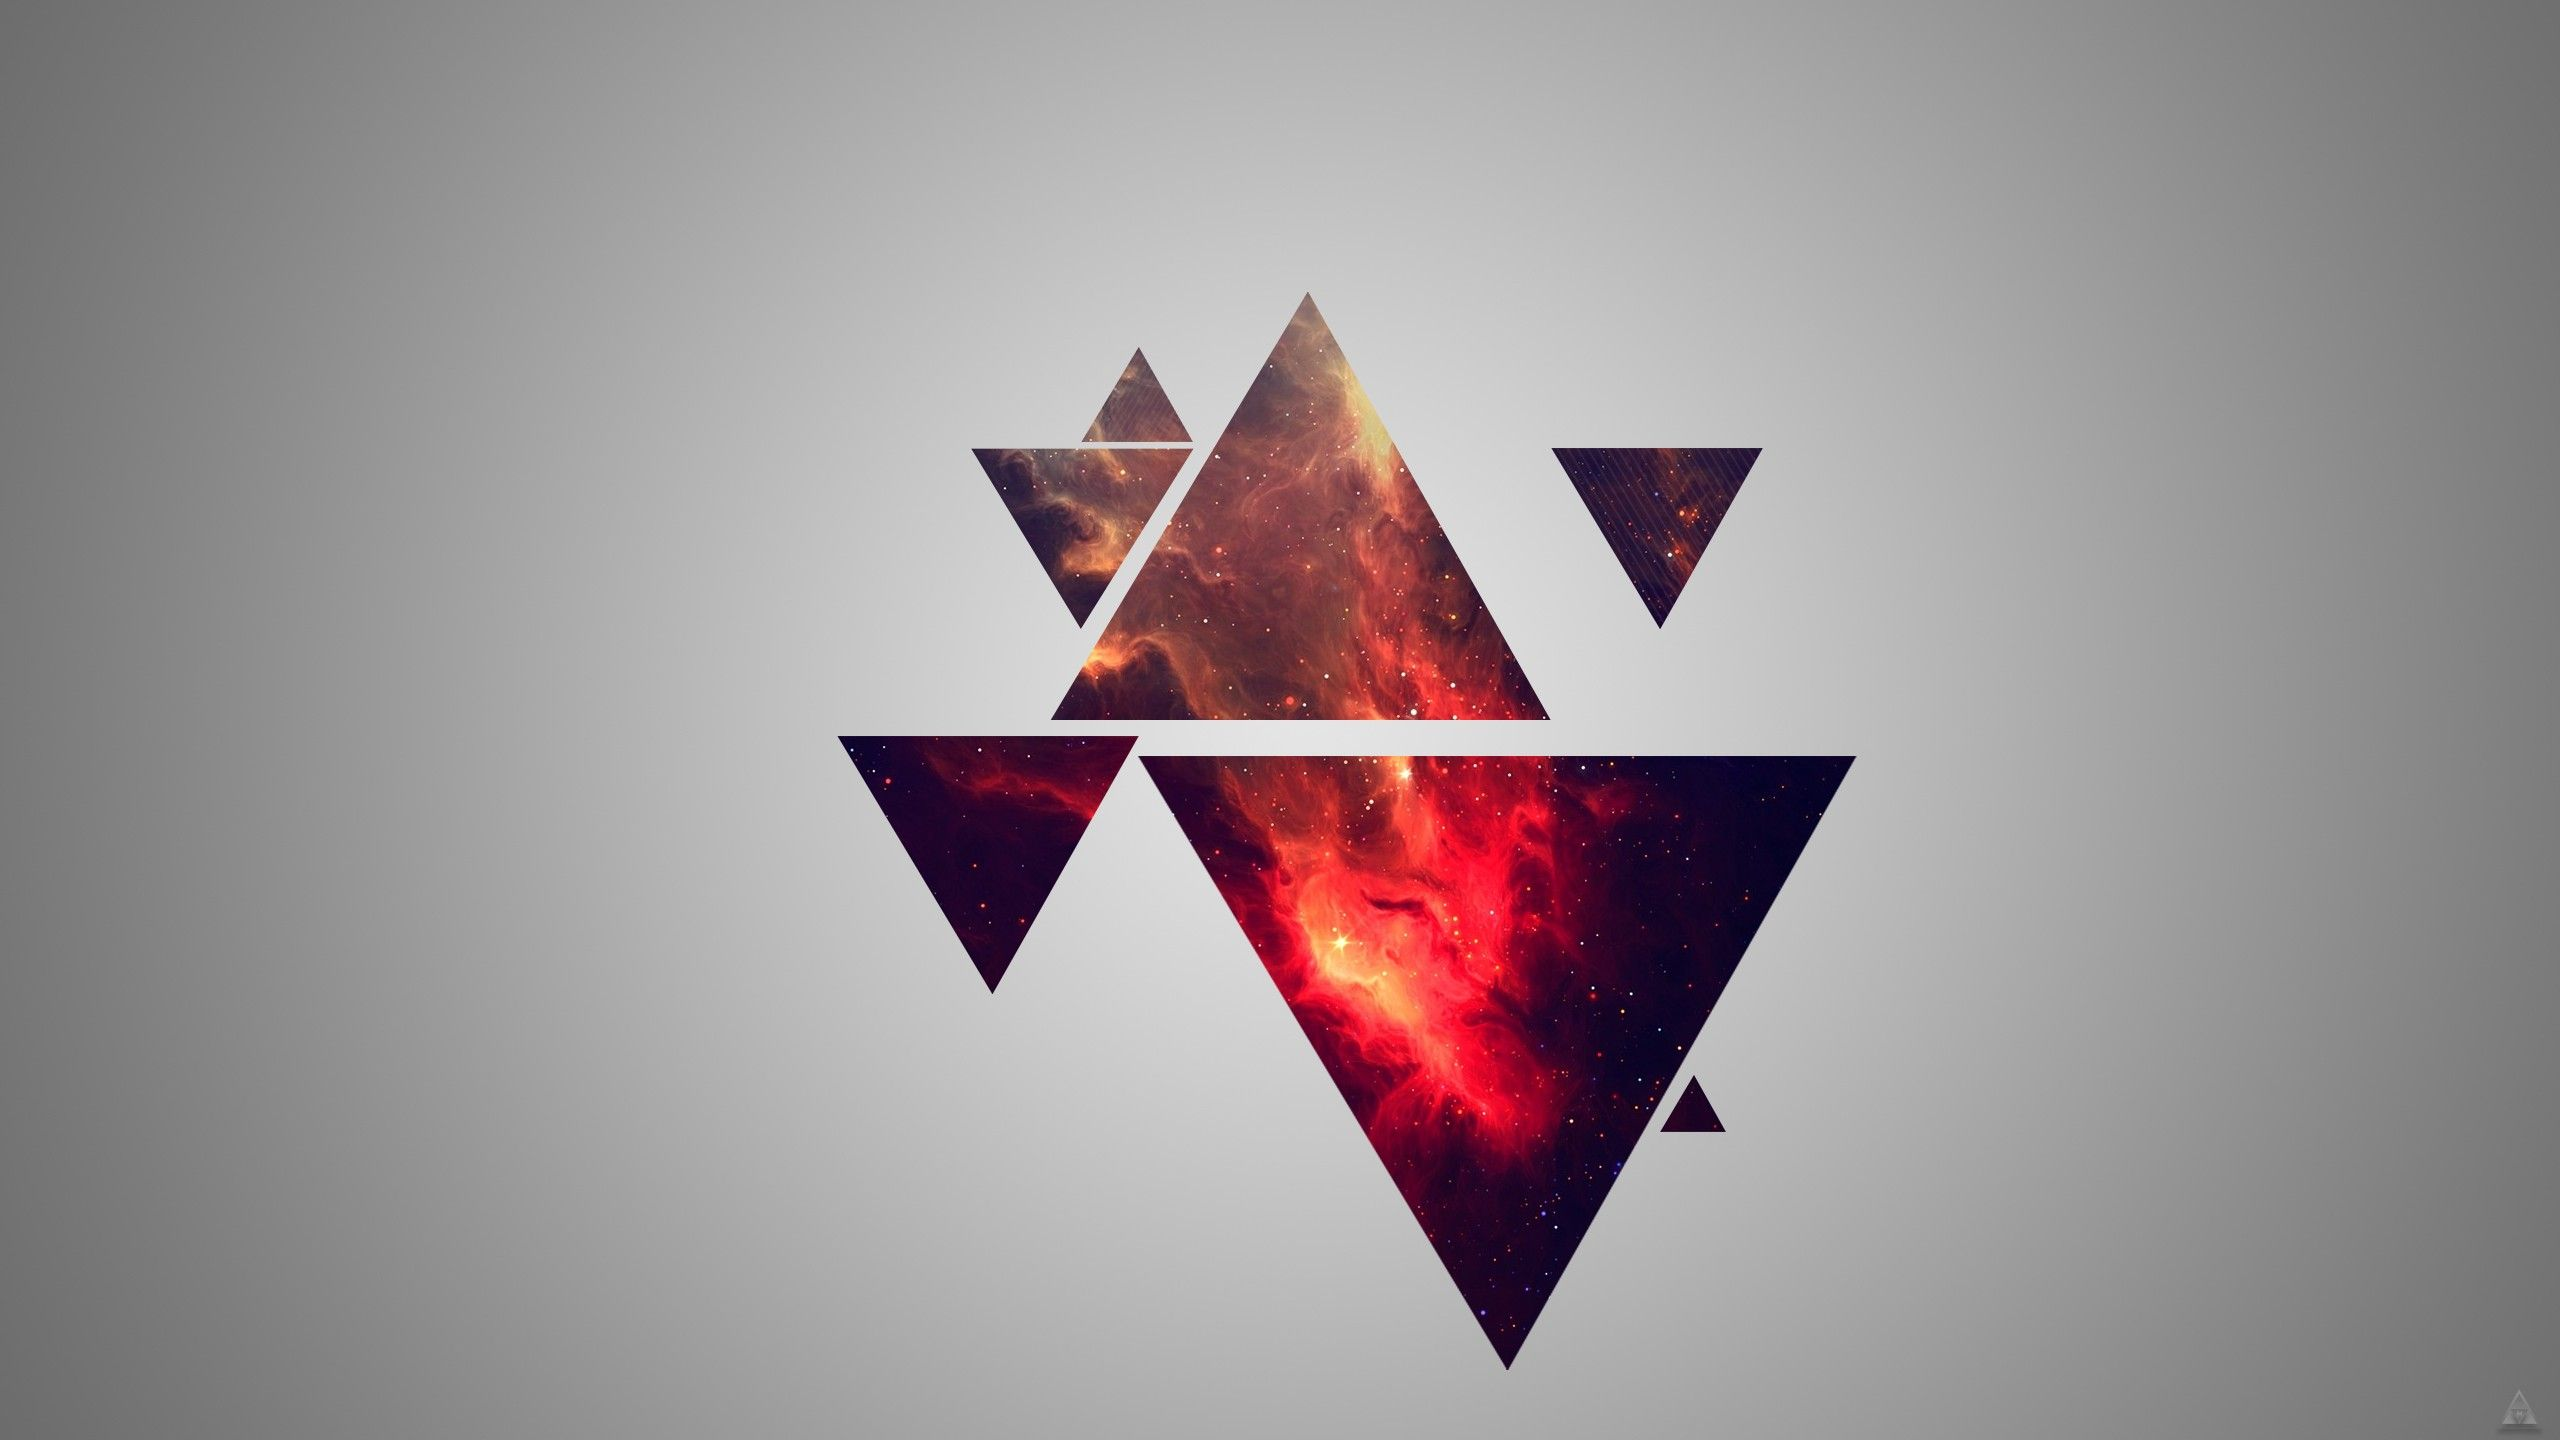 illuminati wallpaper collection for free download